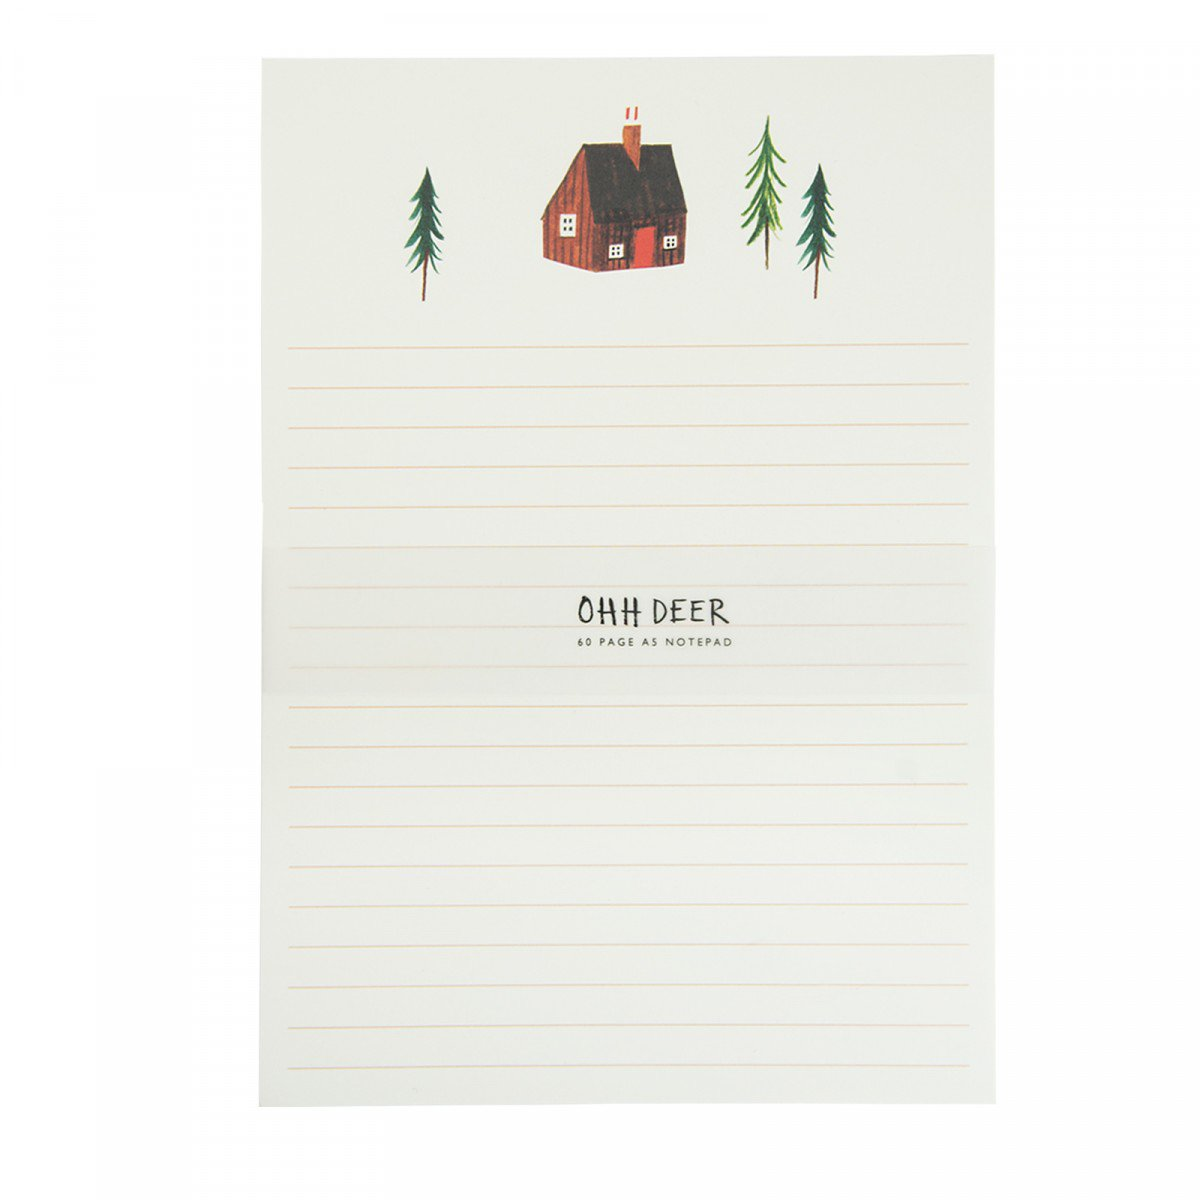 Alpine Lodge A5 Notepad - Shopping lists, they're a thing your mum makes right? Write them in style with a tastefully designed version featuring cute trees!